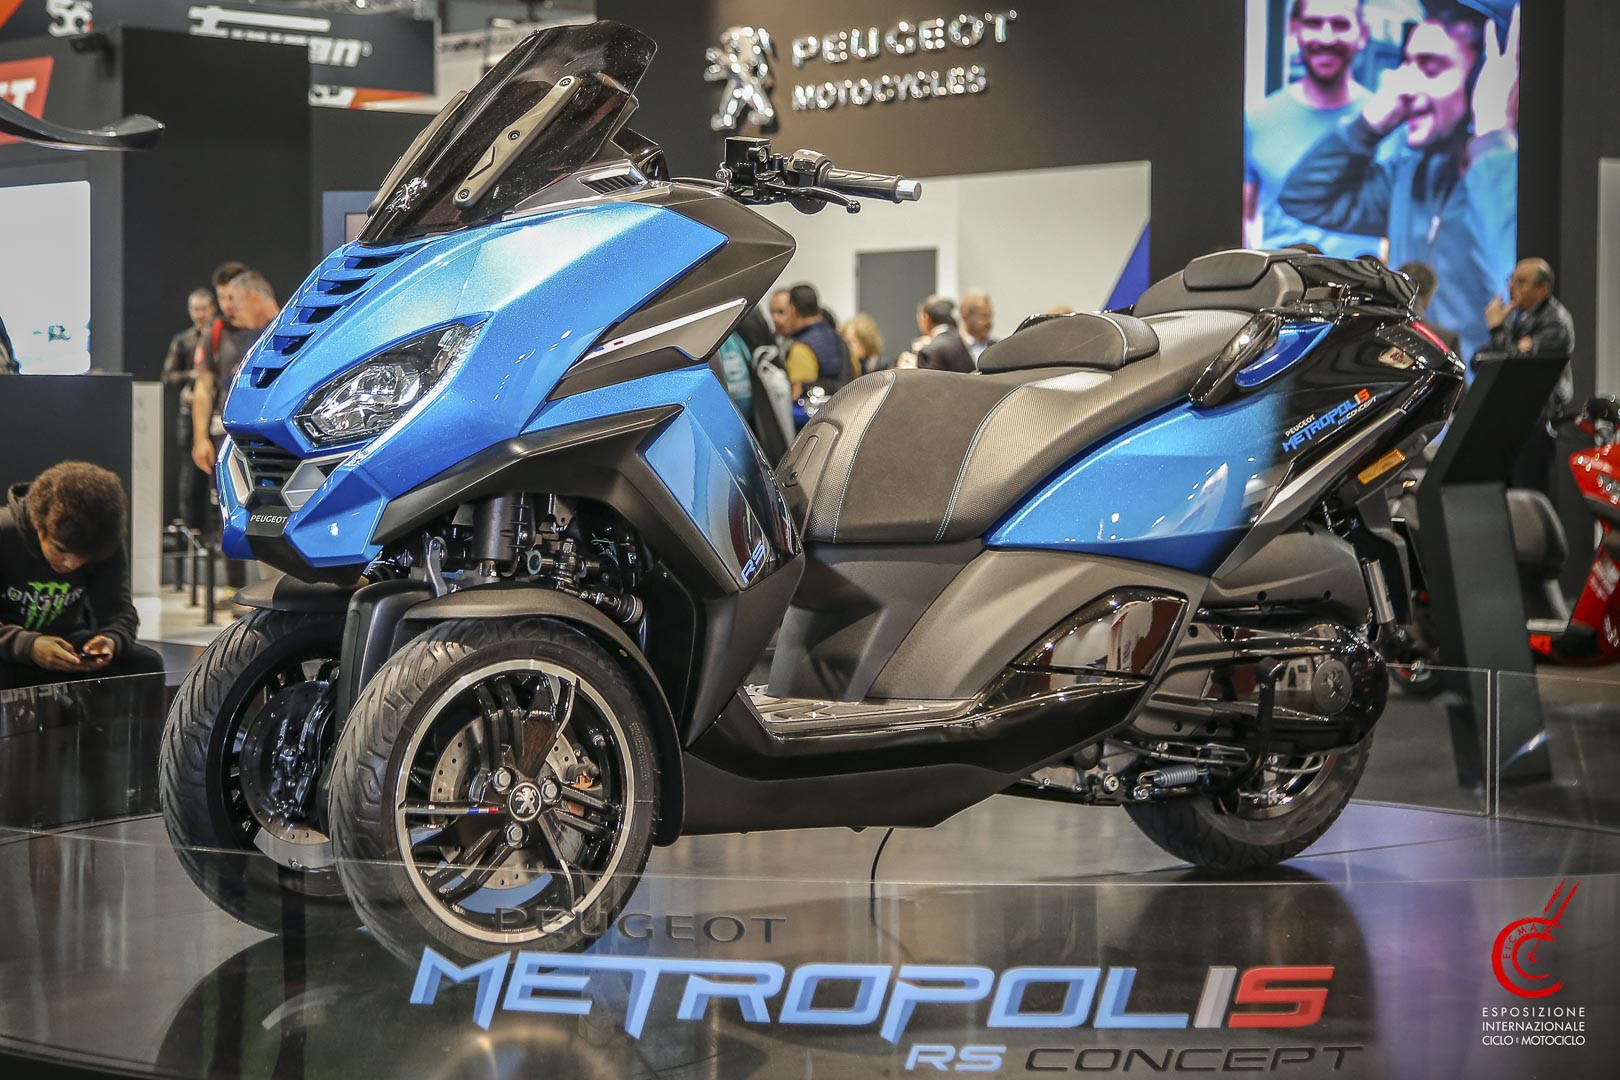 Peugeot Metropolis RS Concept First Look 3